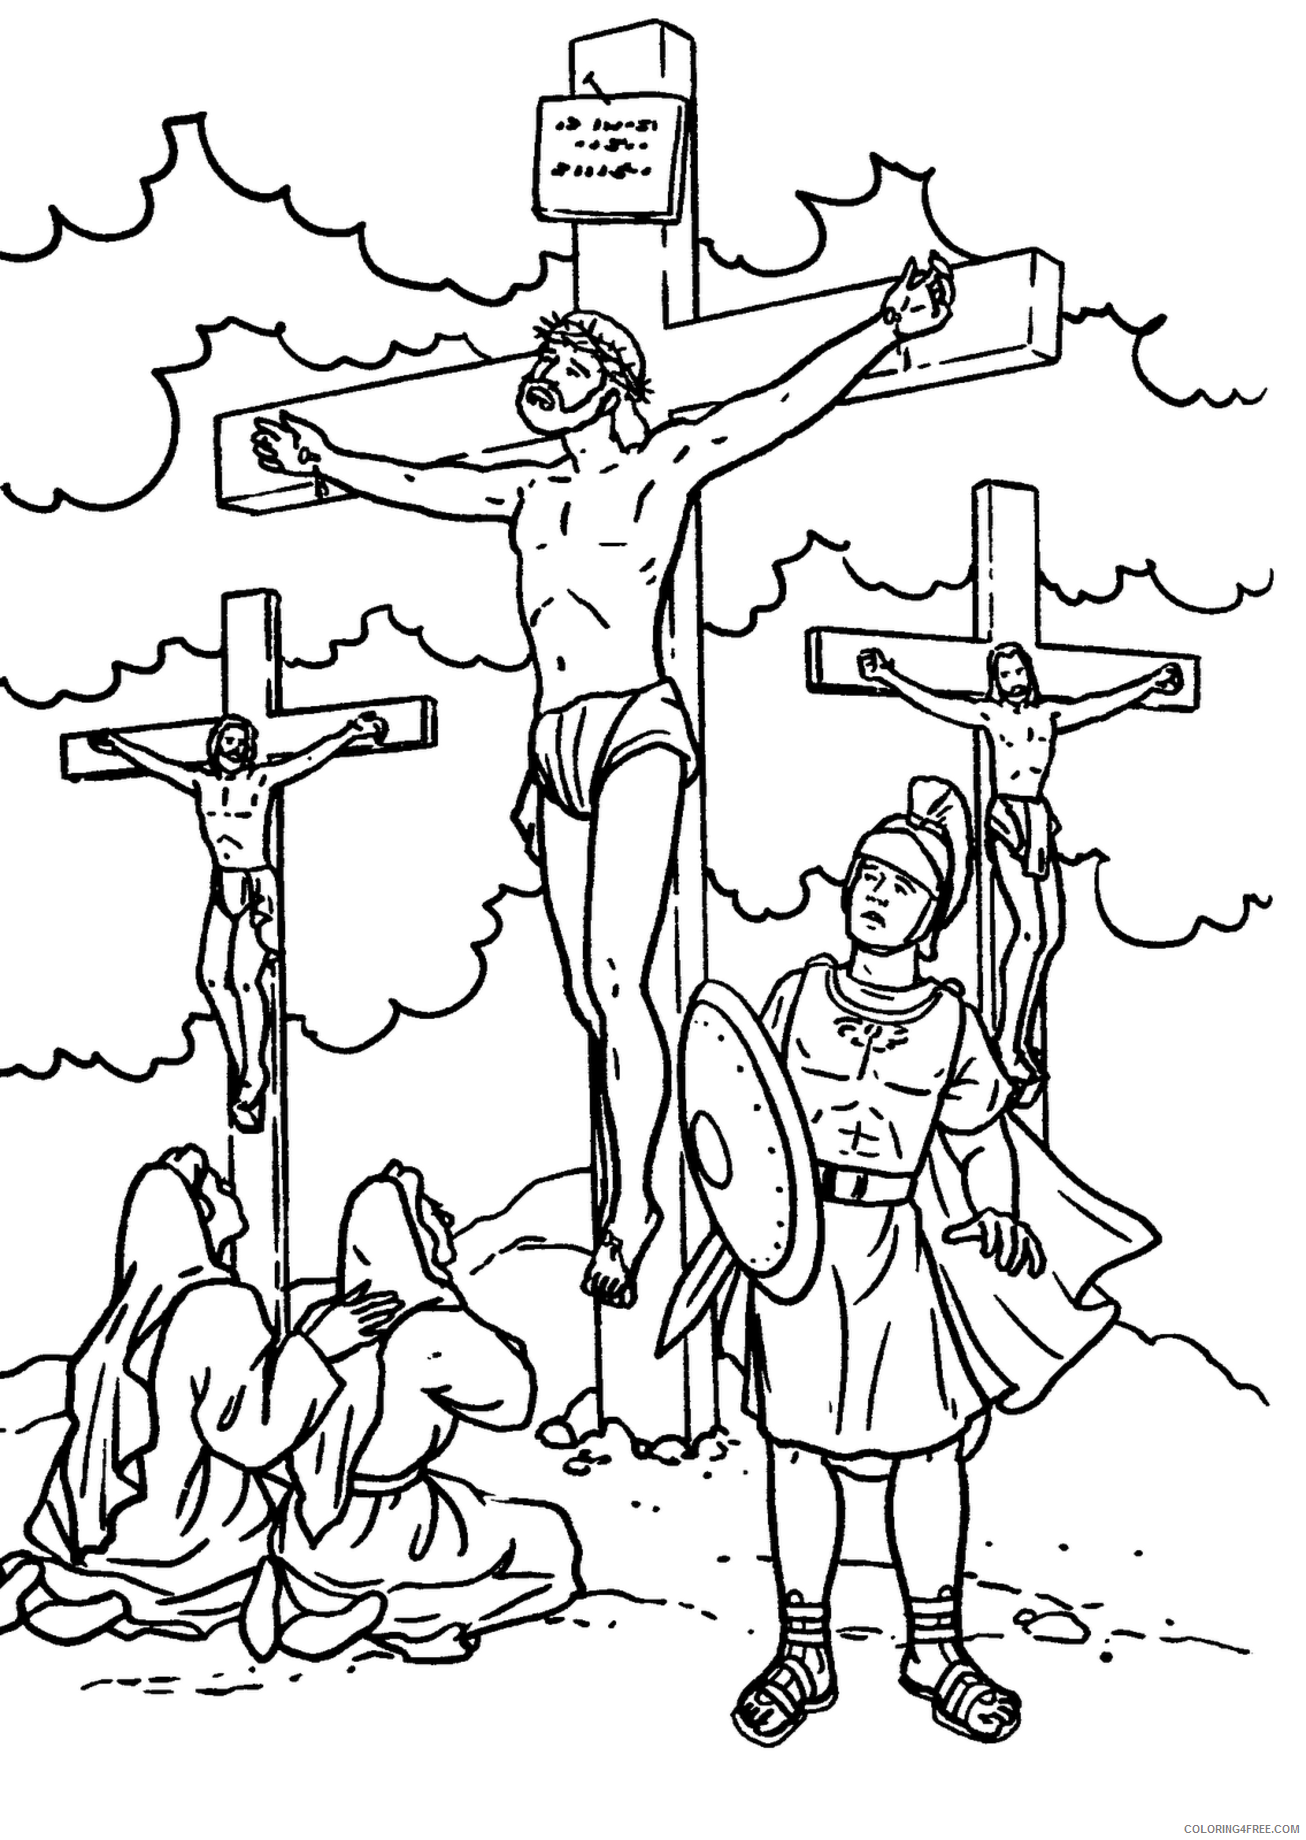 bible story coloring pages jesus crossed Coloring4free